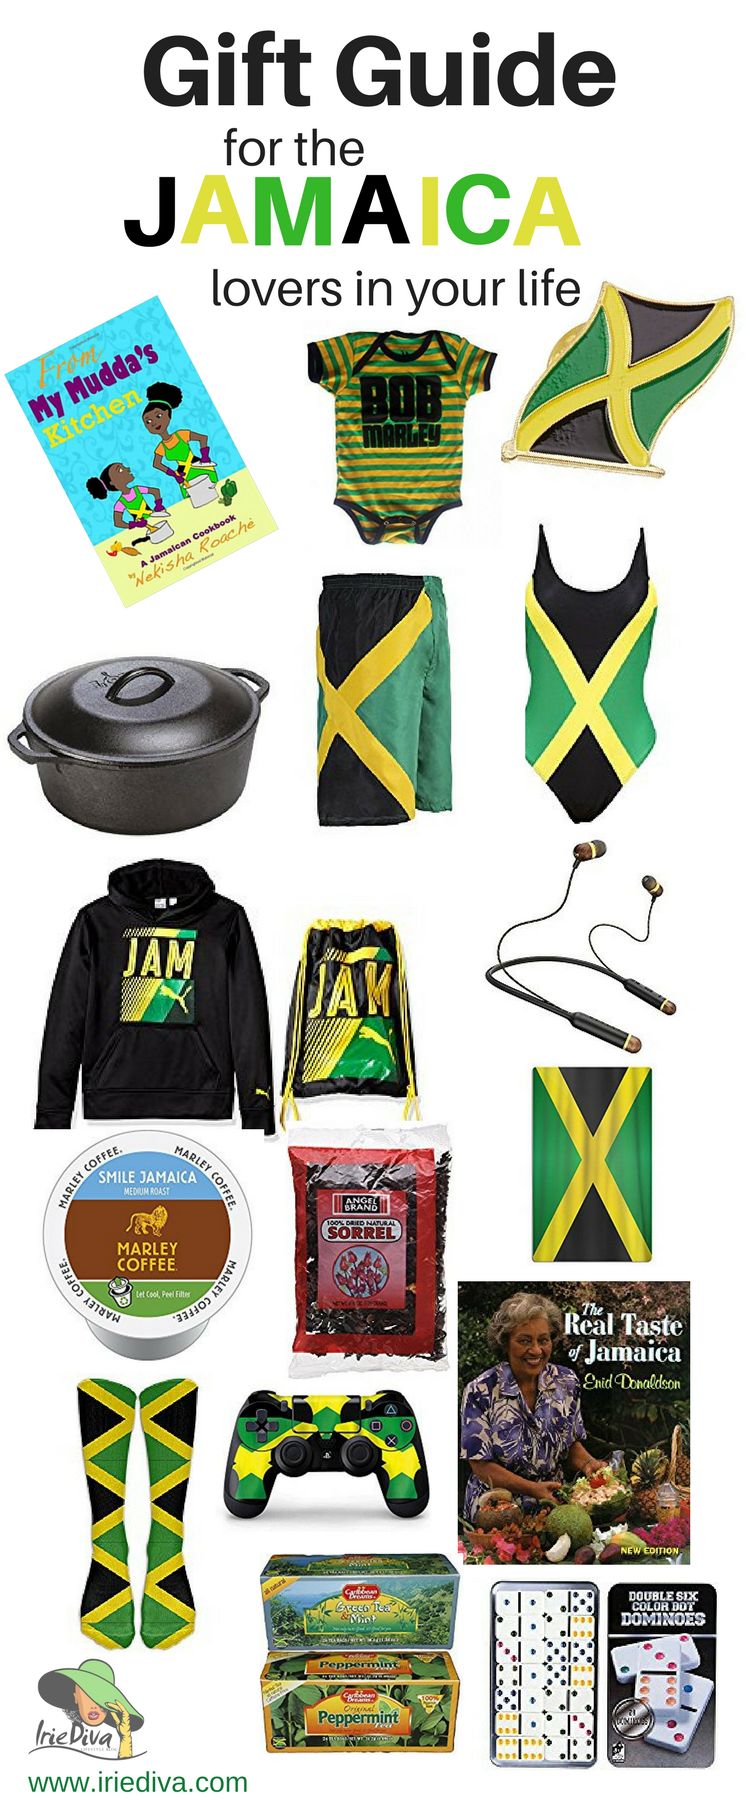 Gift ideas for the Jamaican in your life! If you're looking for Jamaican souvenirs or presents to buy for a Jamaican, this gift guide written by a local will guide you to the perfect gifts! Great for birthday, souvenir or Christmas gifts